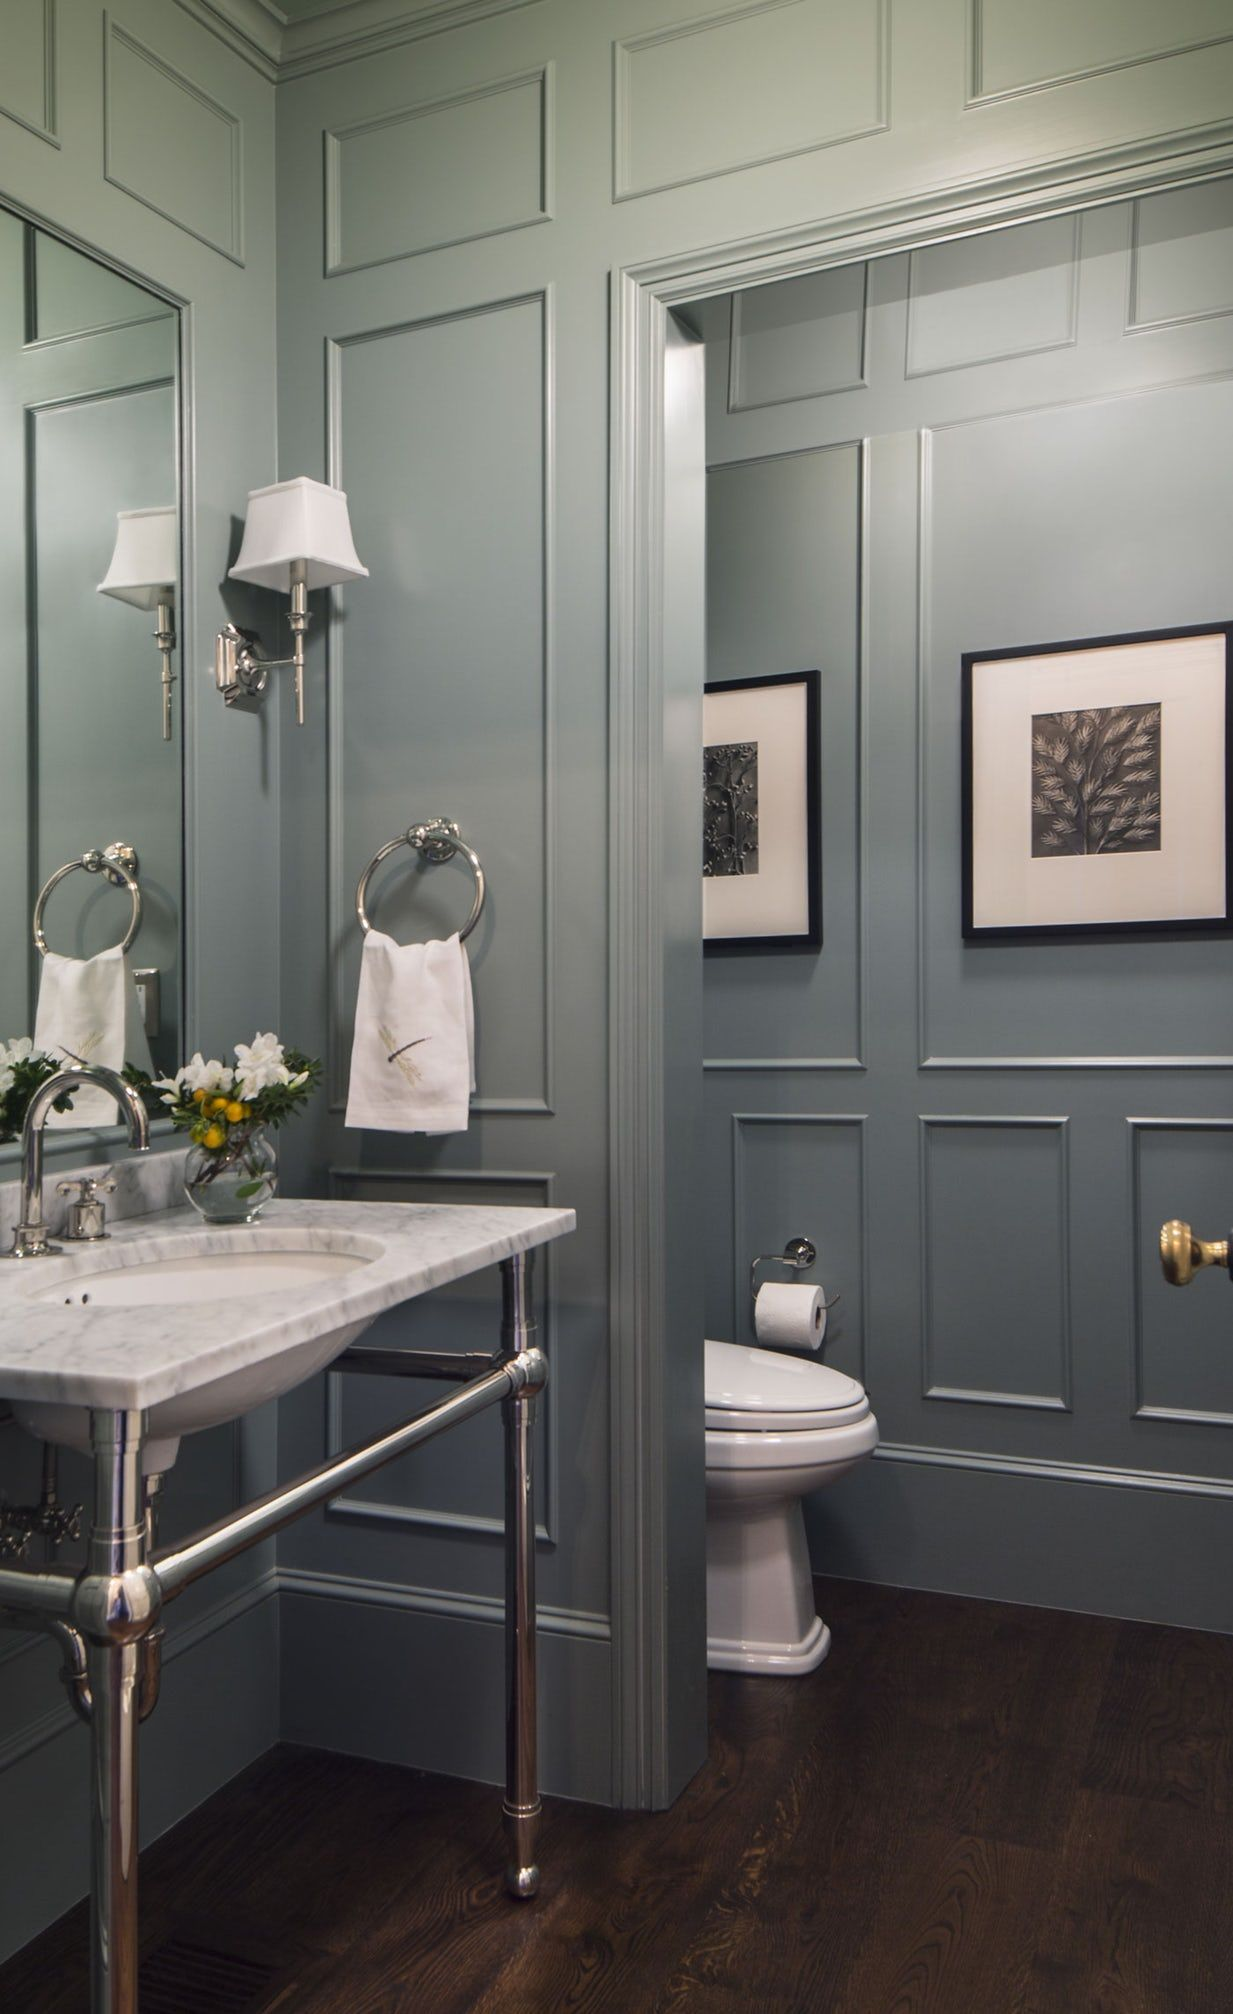 Residential Interior Project Has Modern Yet Vintage Take: Powder Room In A New Tennessee-Style Farmhouse